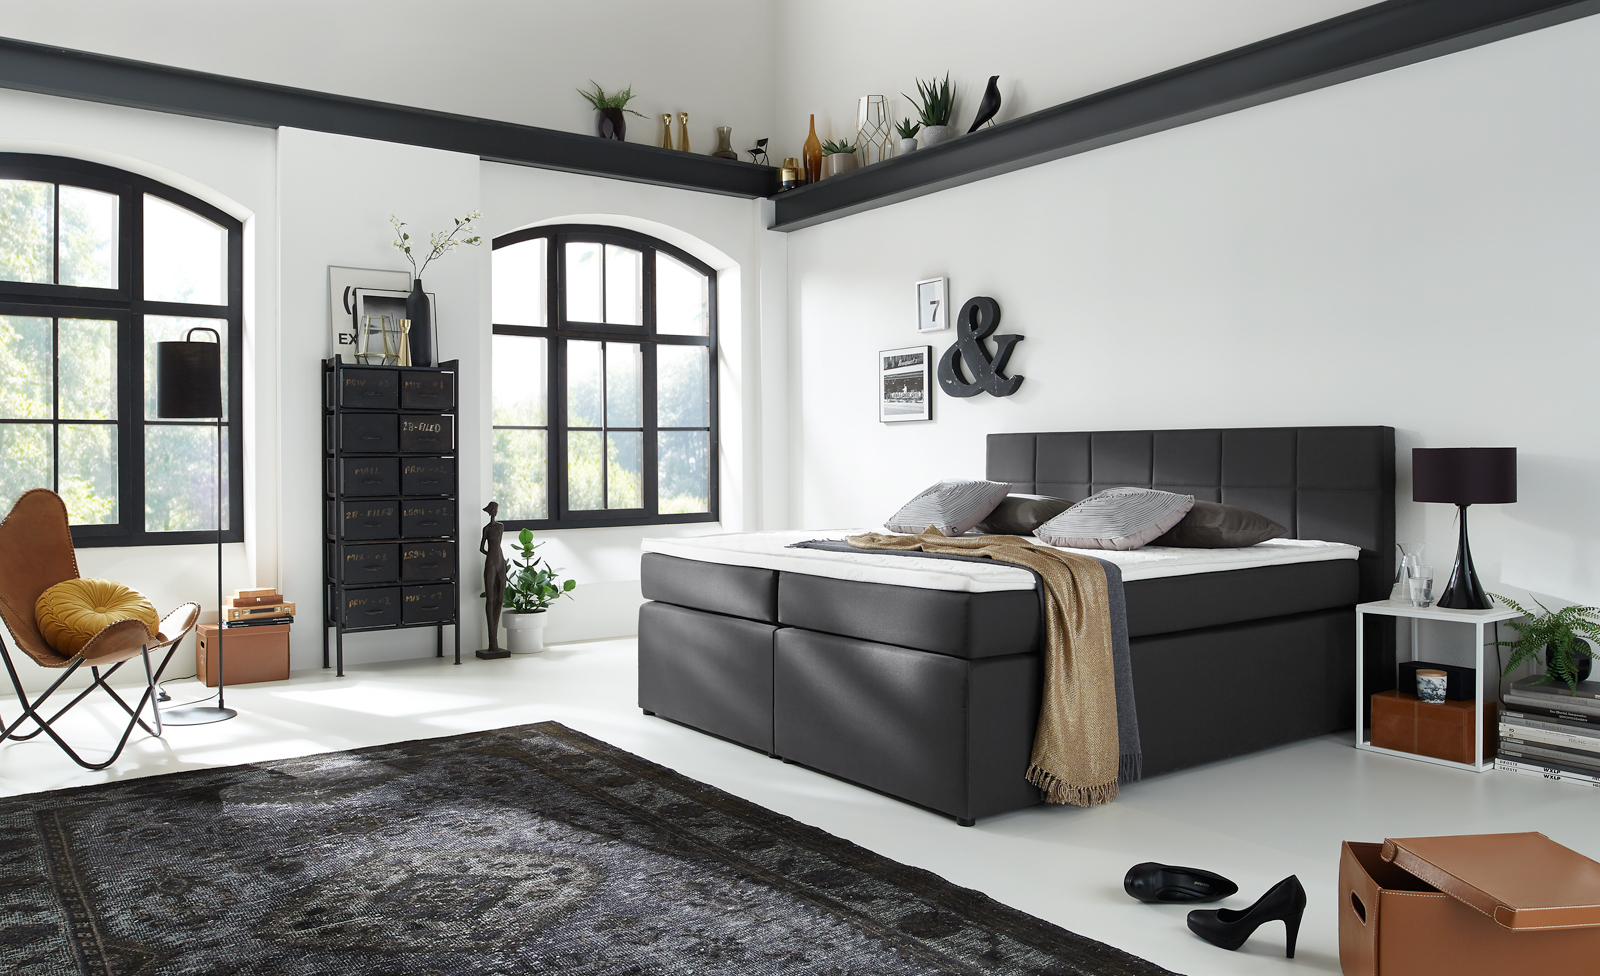 sam boxspringbett hotelbett 180 x 200 cm stoffbezug grau sassari demn chst. Black Bedroom Furniture Sets. Home Design Ideas